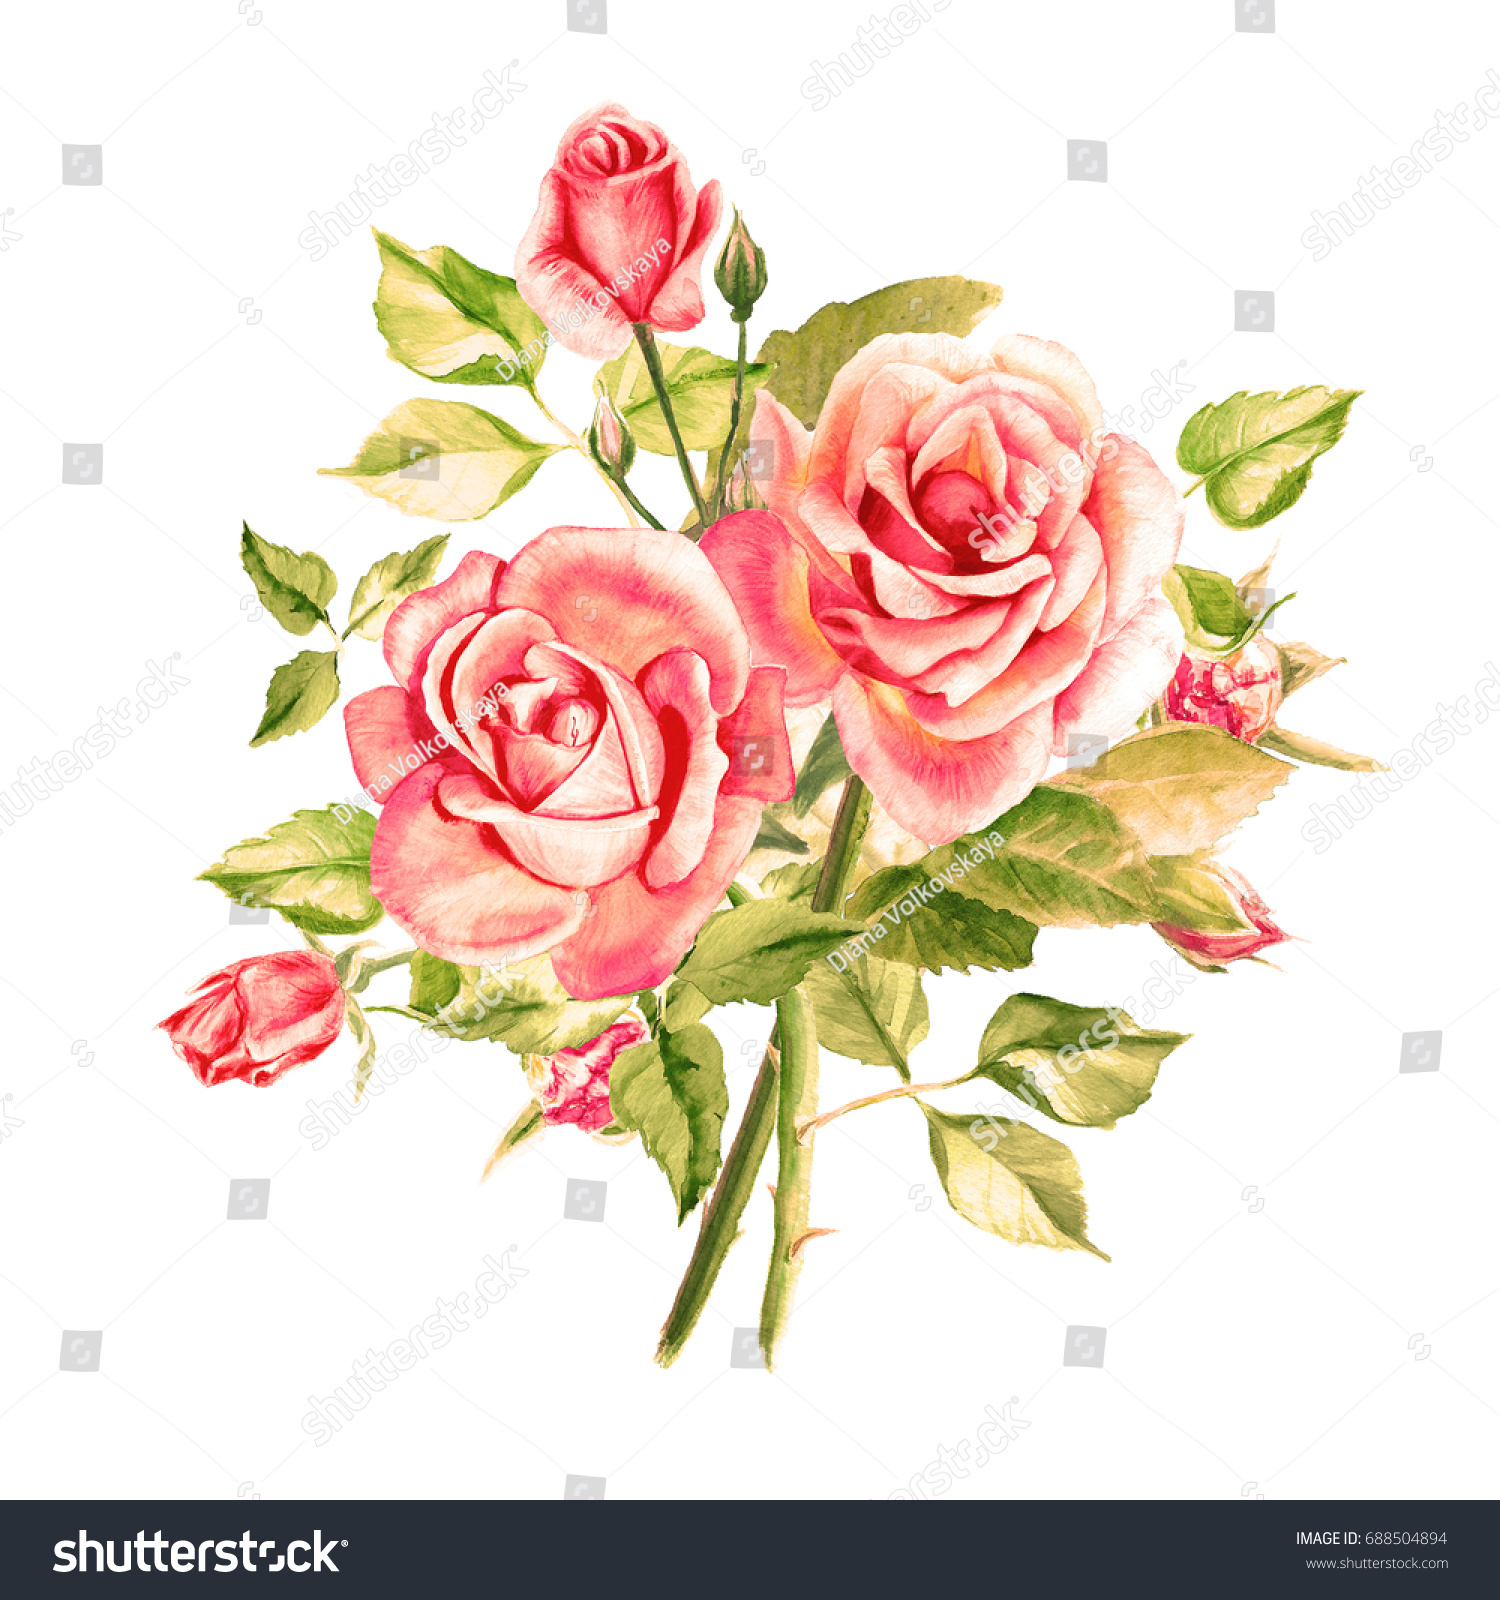 royalty free stock illustration of watercolor pink roses bouquet